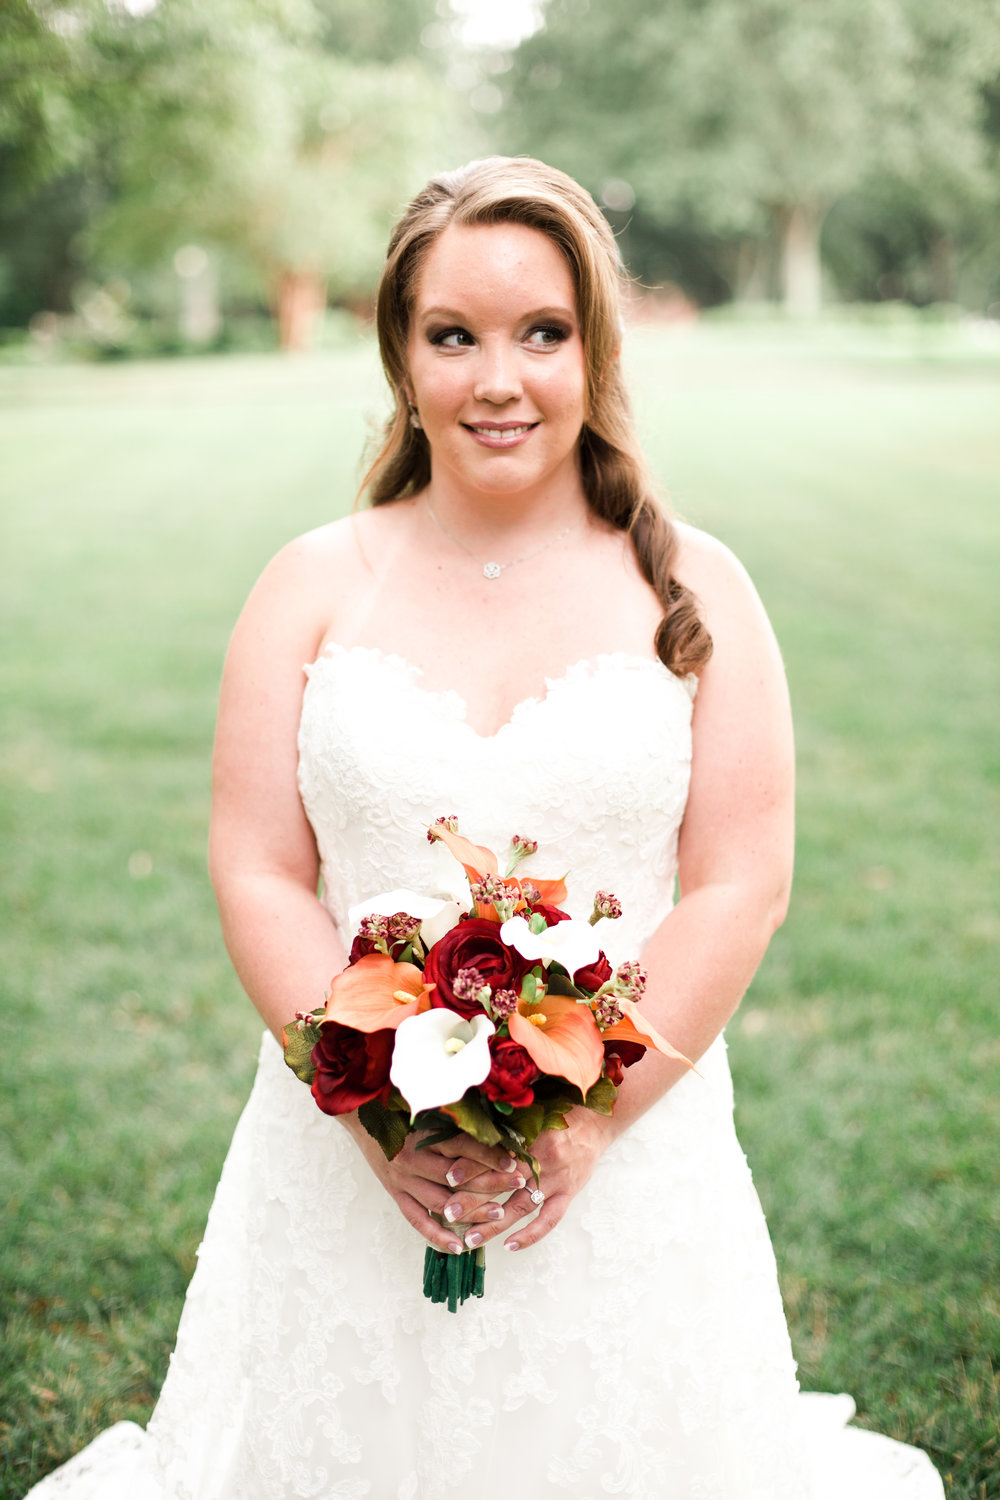 gabbie_bridal_poured_out_photography-34.jpg